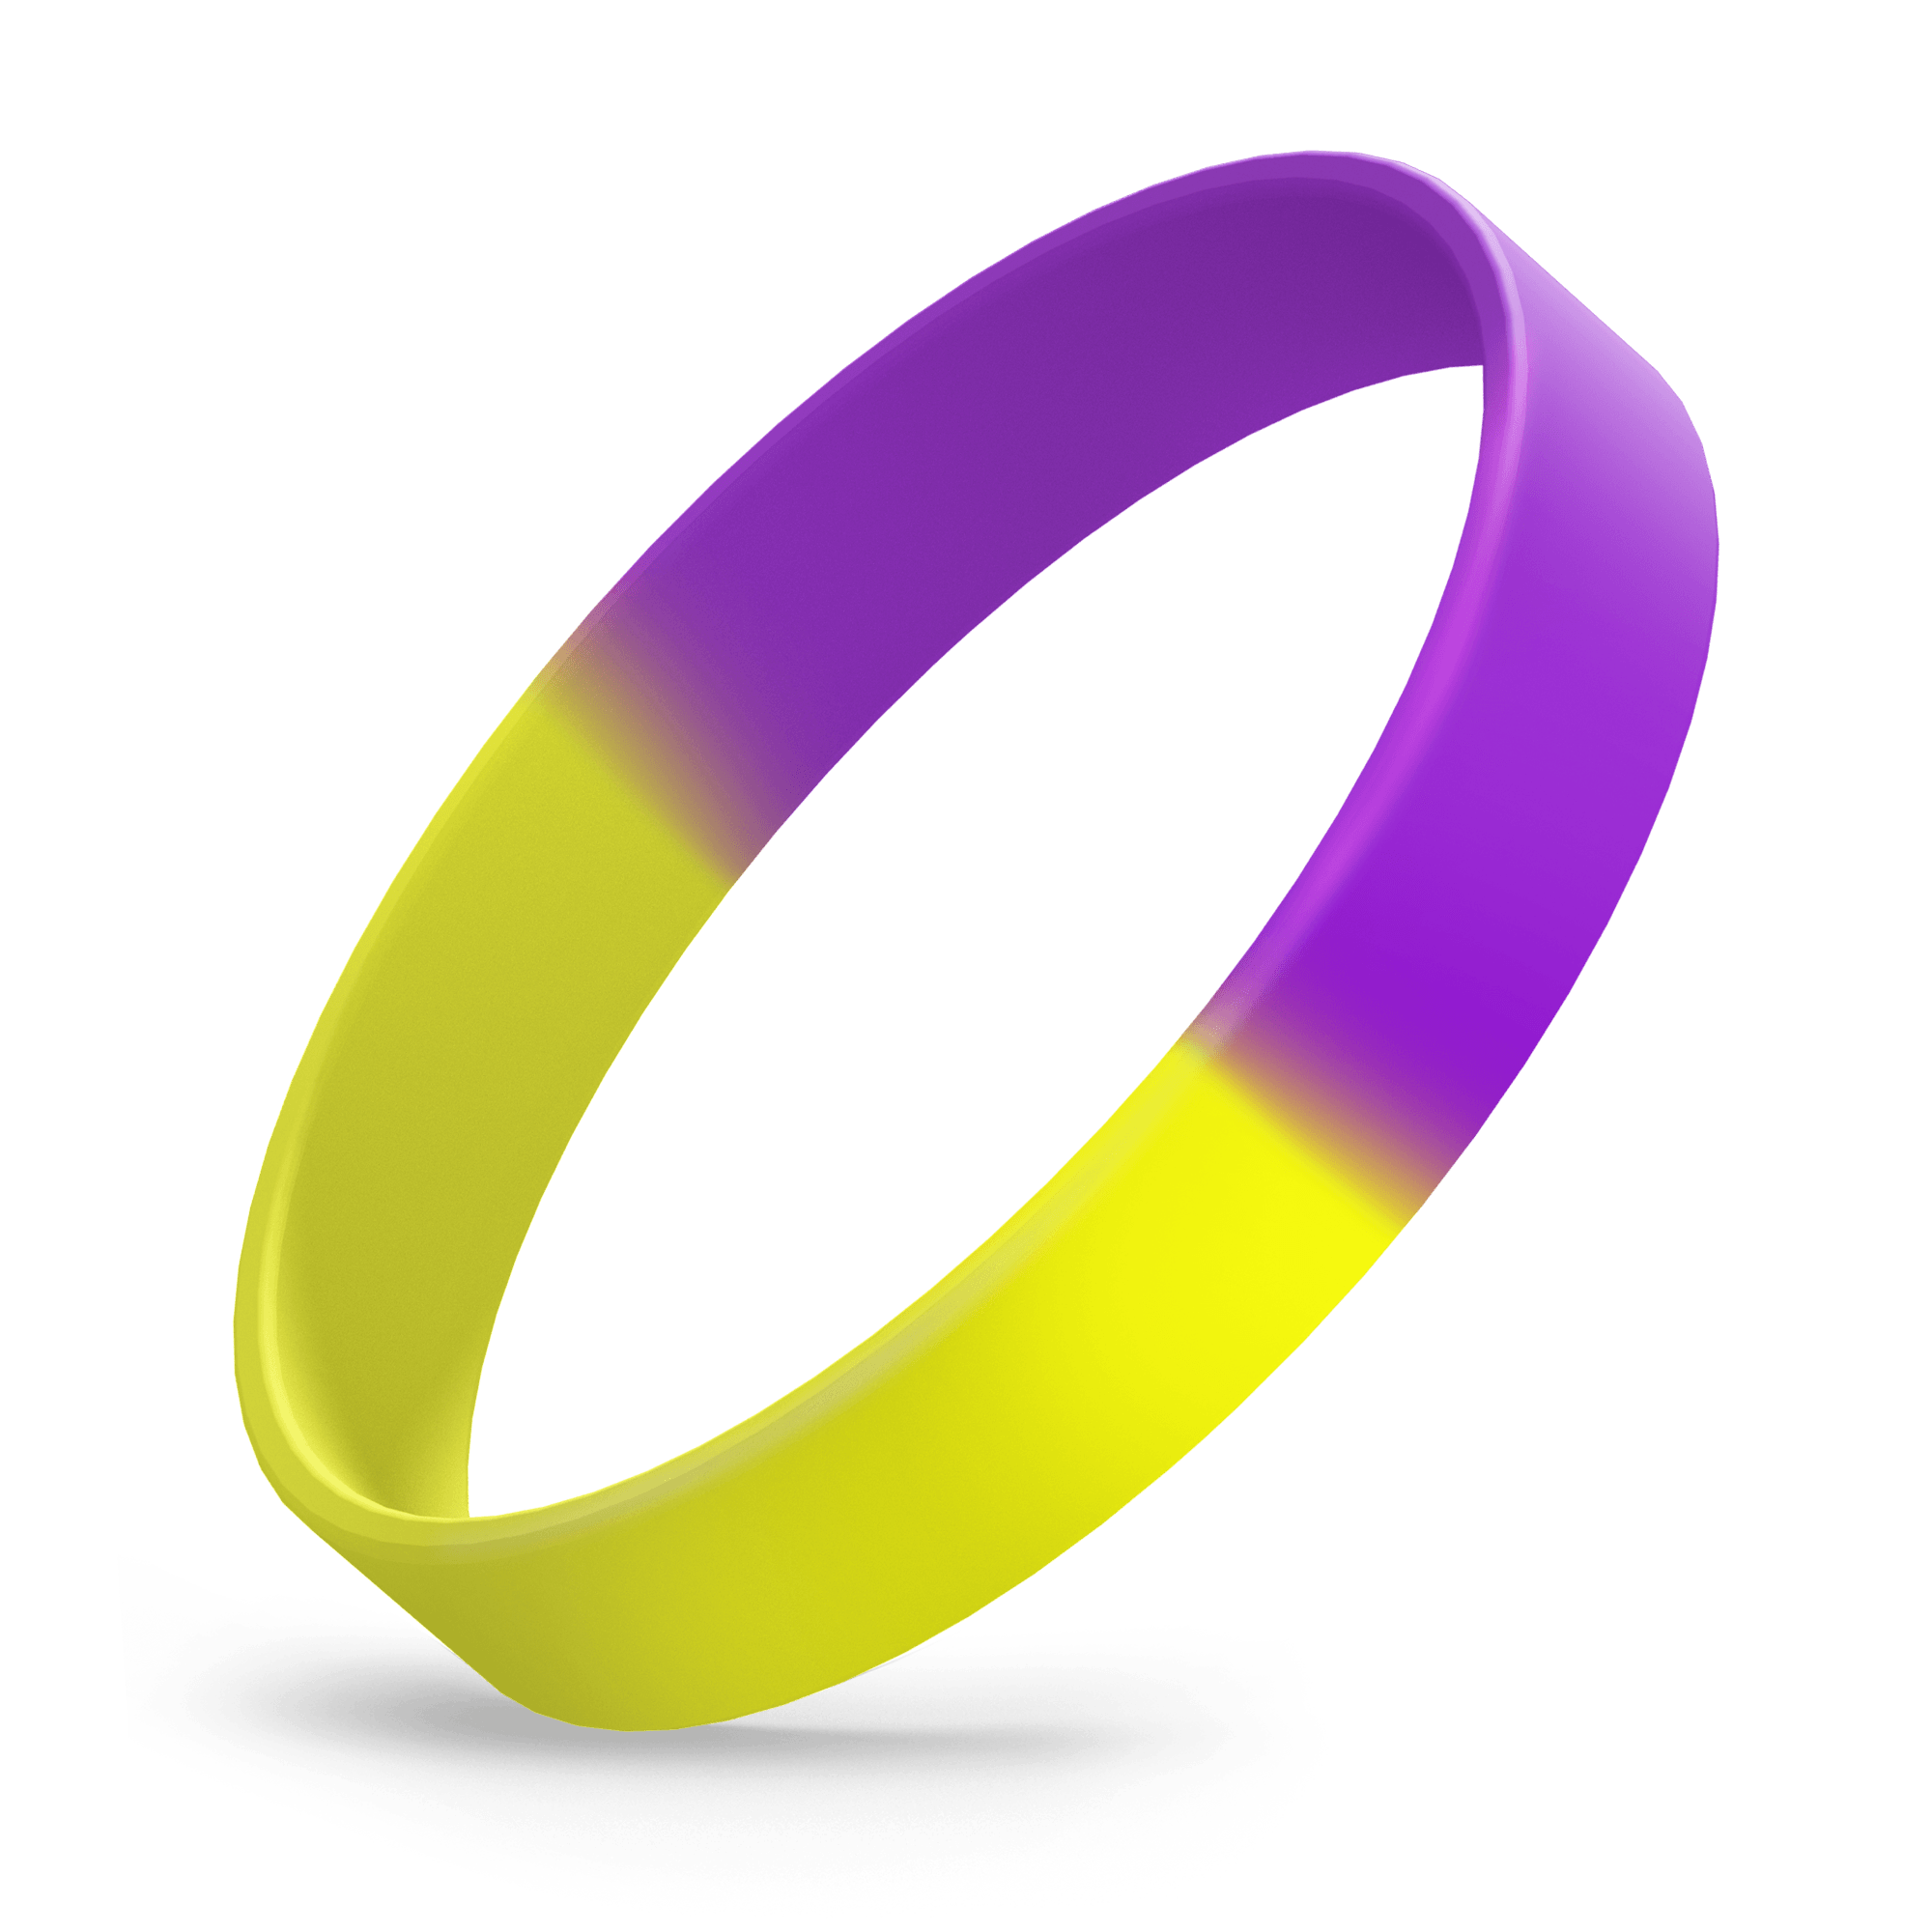 Ink Injected 1/2 inch (Yellow Gold / Purple Segmented)